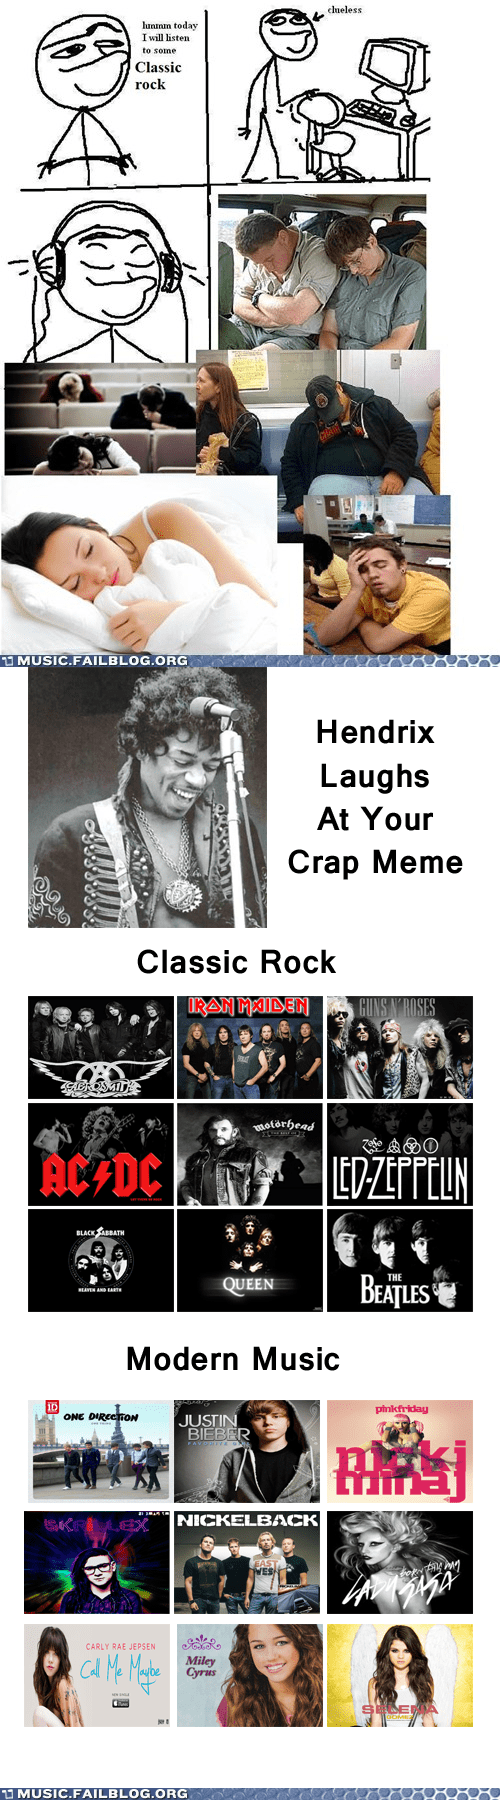 I'll Just Stick With My Boring Classic Rock, Thanks